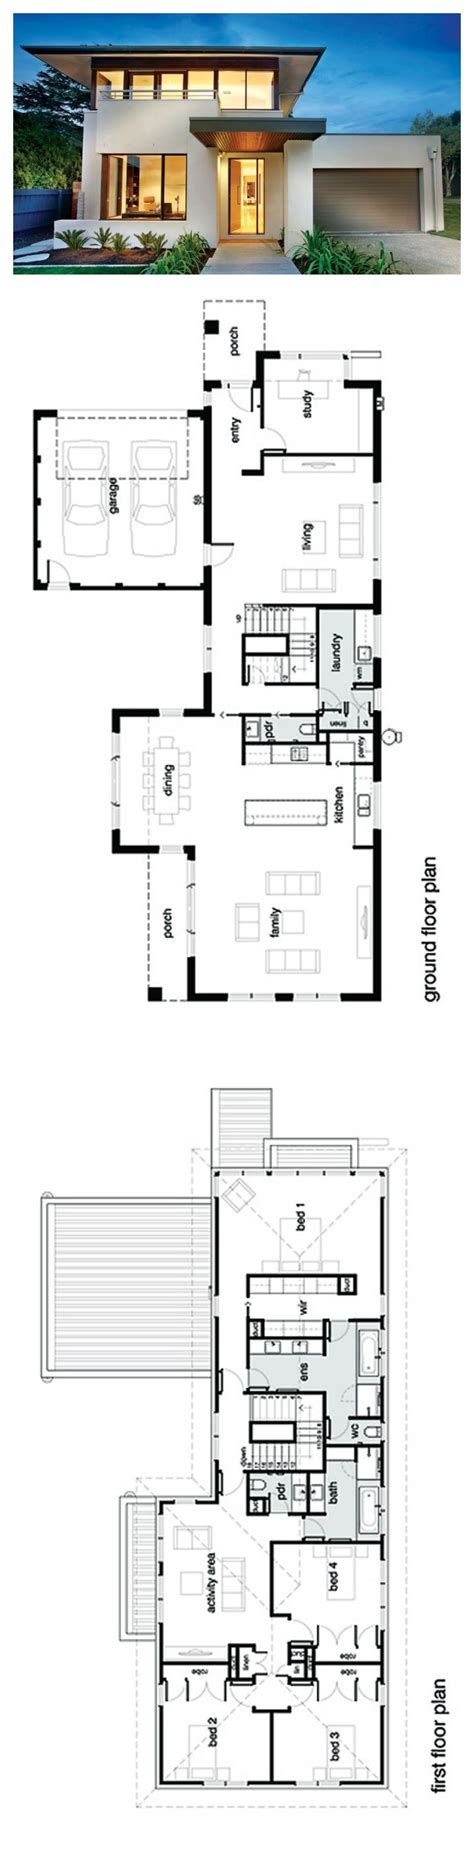 contemporary floor plan the 25 best ideas about modern house plans on pinterest